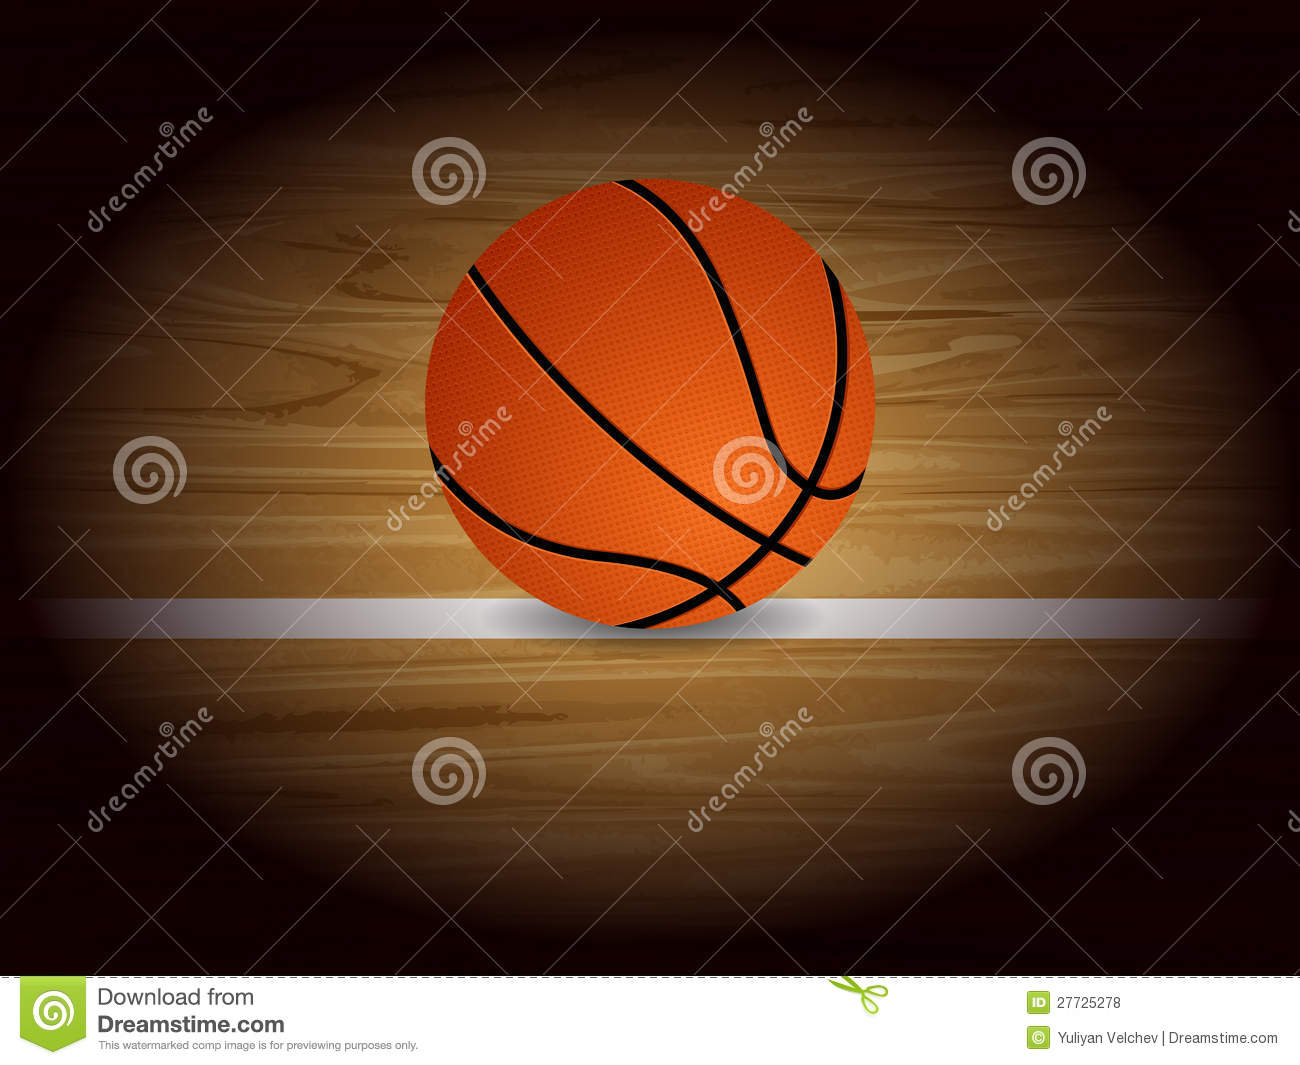 Basketballhintergrund